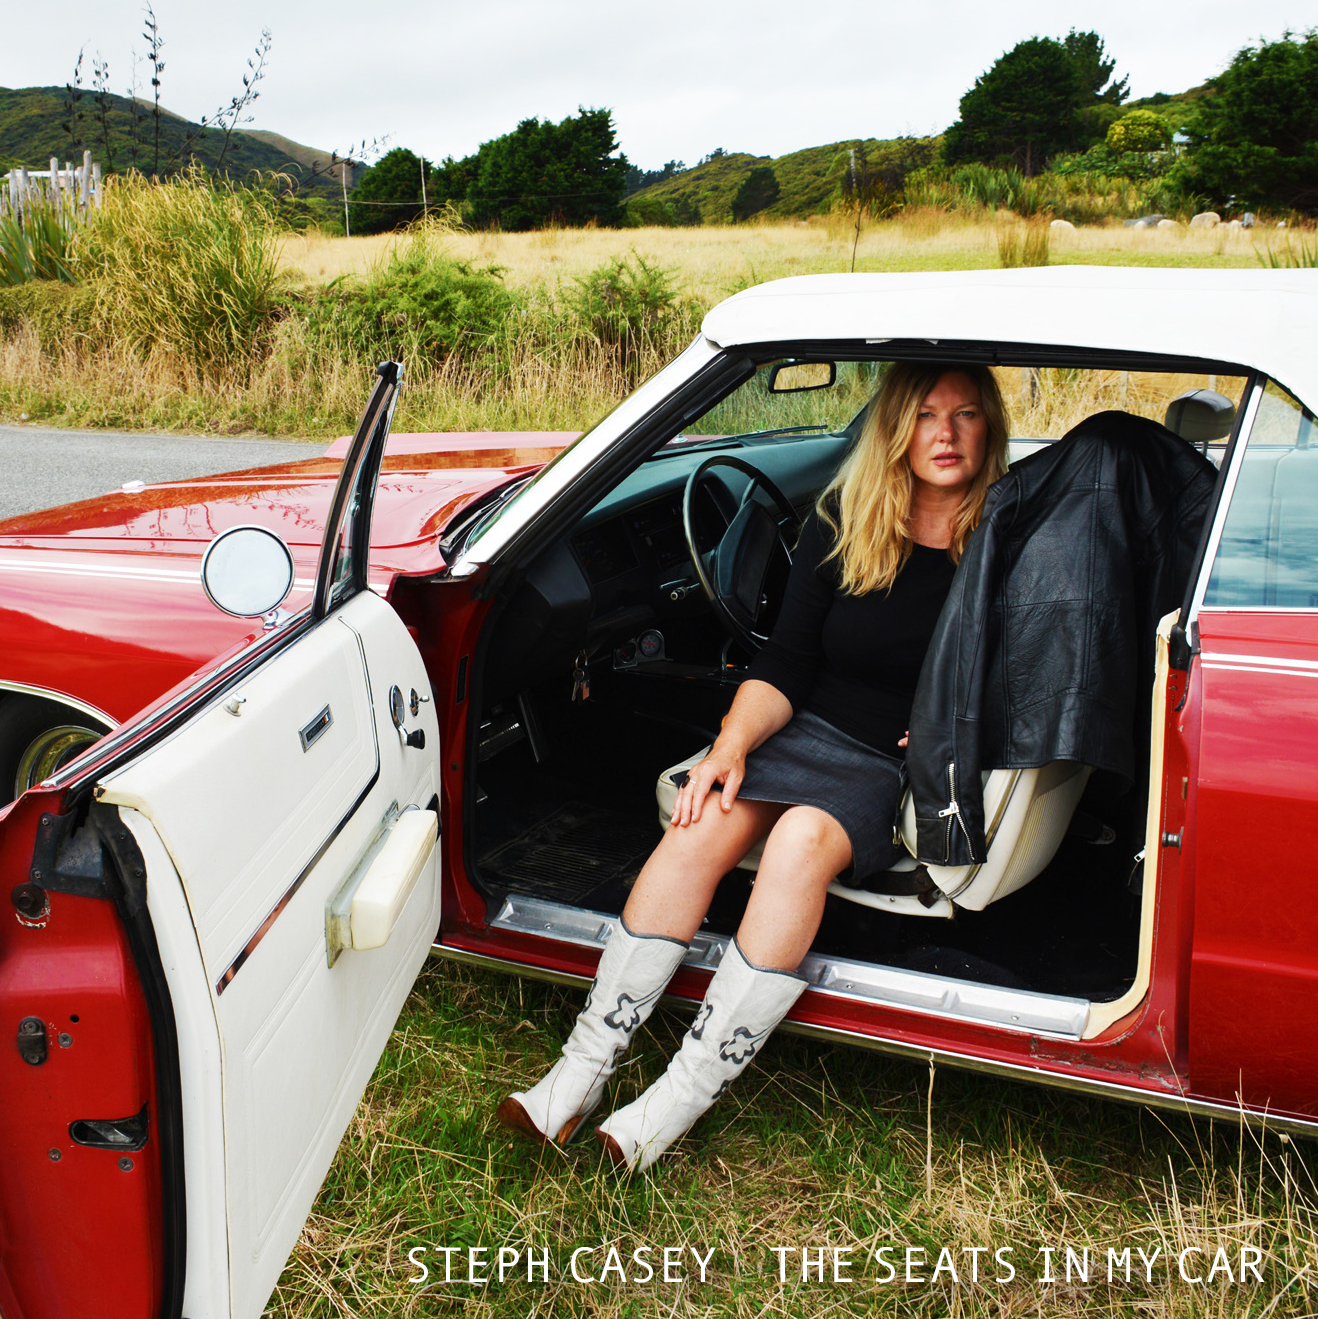 Steph_Casey___The_Seats_in_my_Car_album_art____hi_res